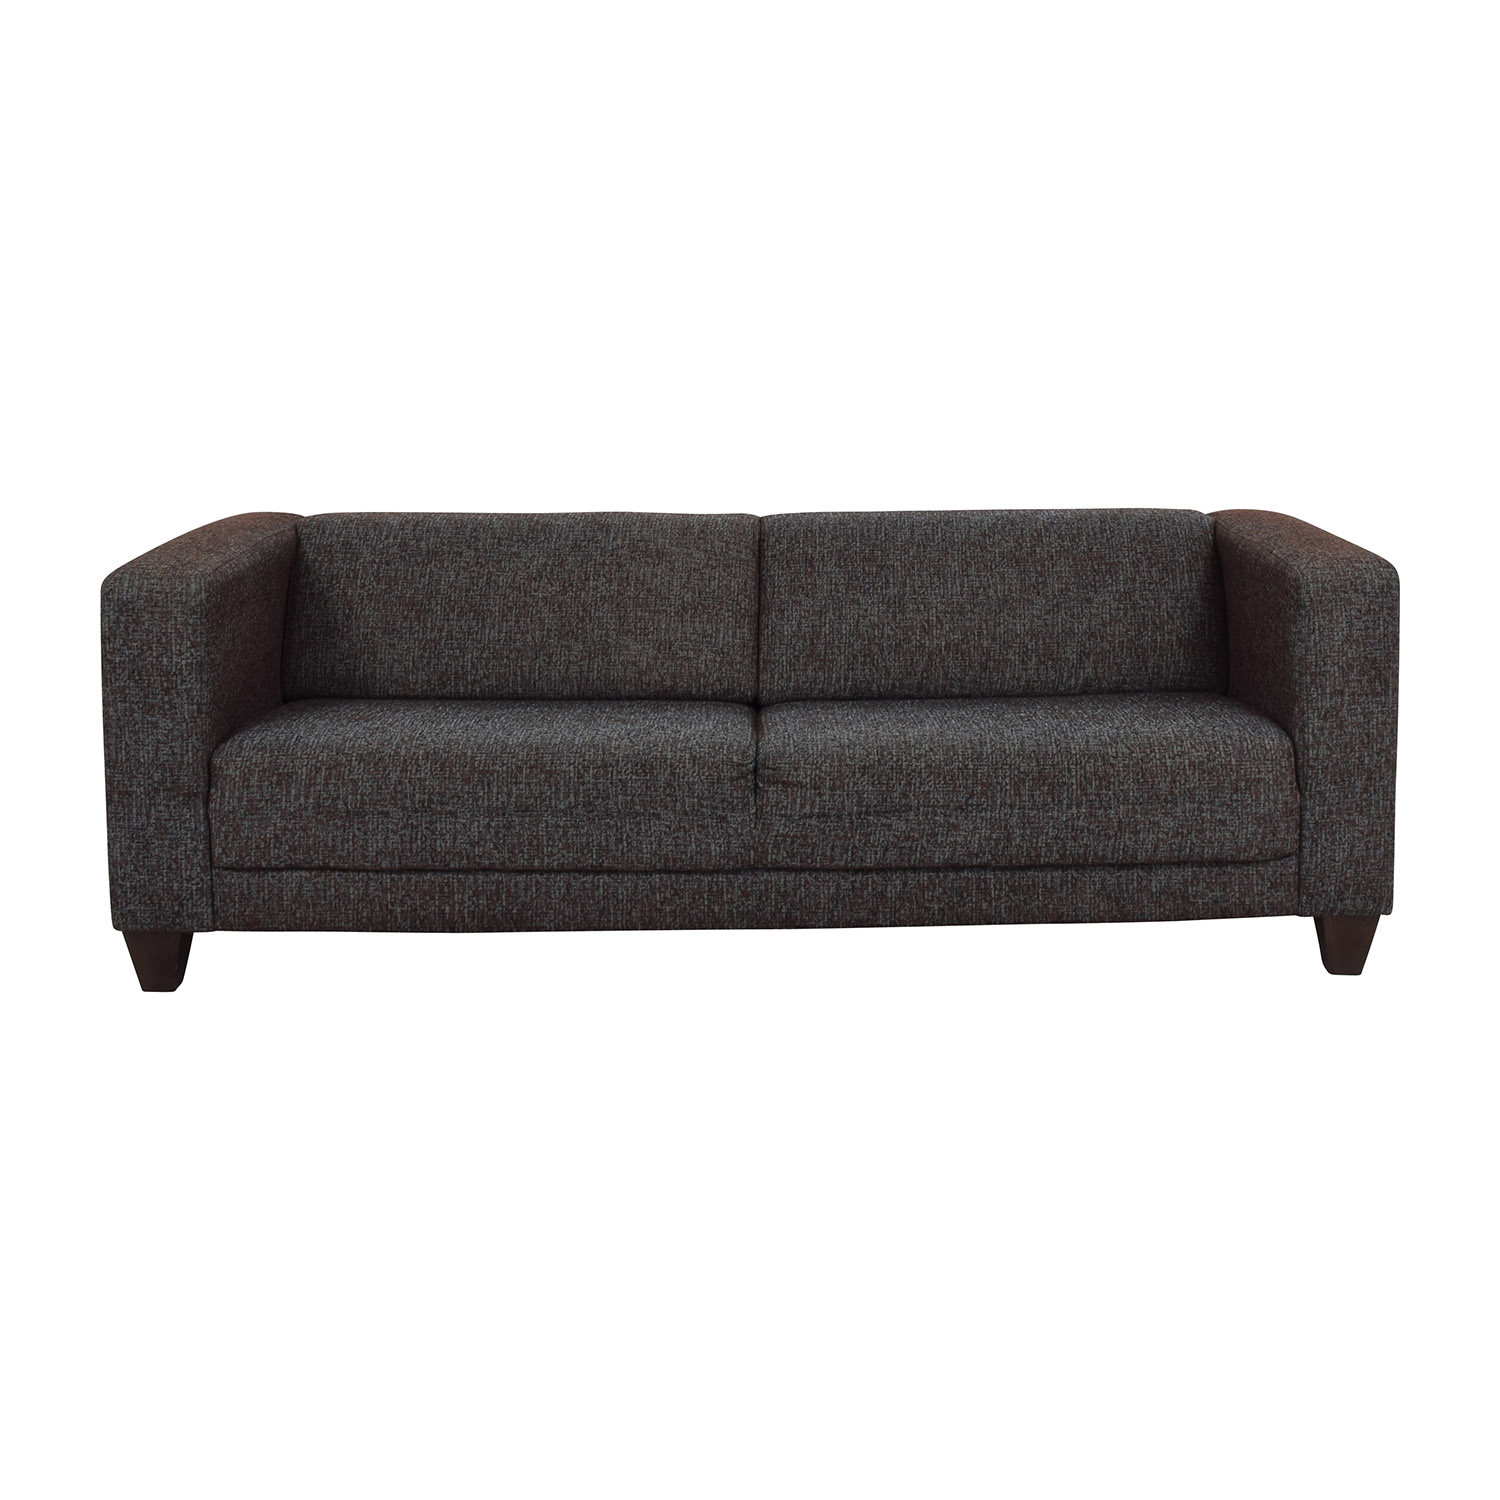 eq3 sofa michael jackson 75 off stella two cushion sofas coupon